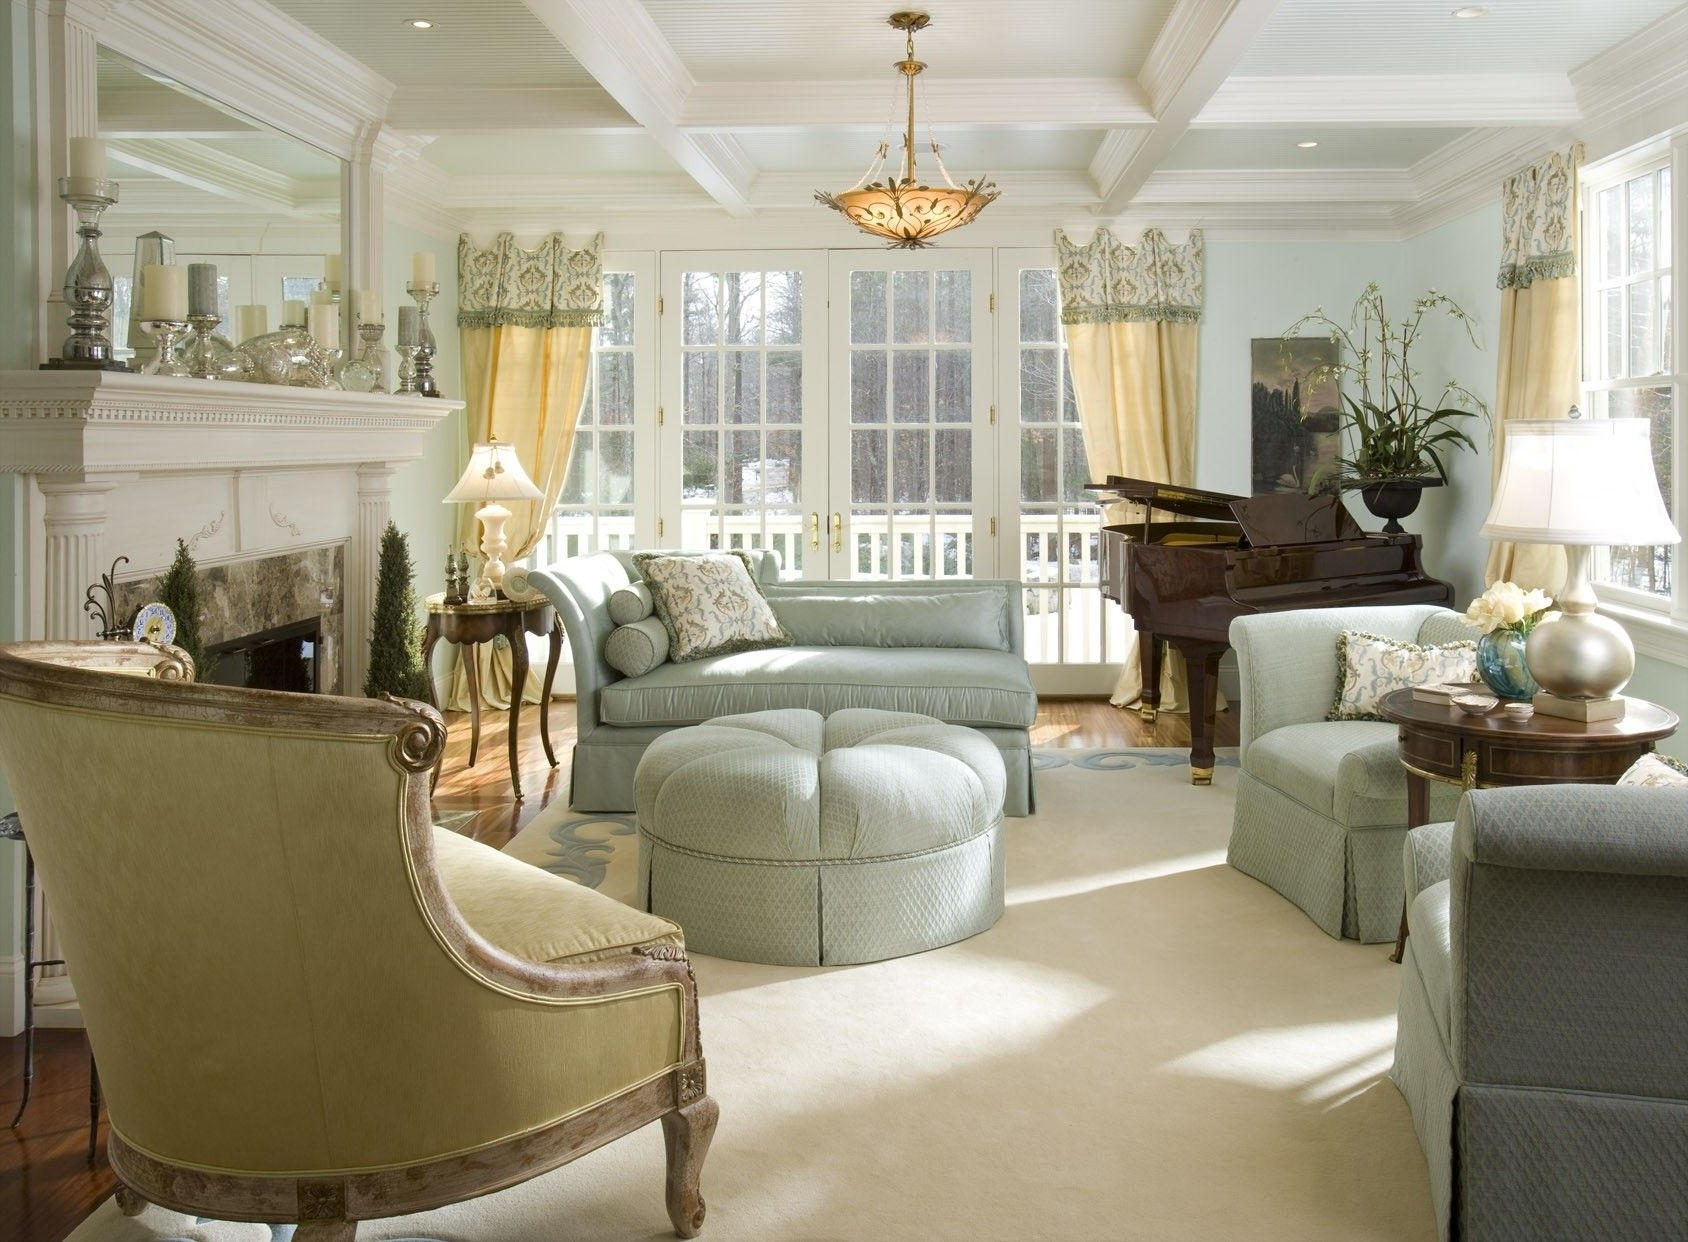 Widely Used Combs 5 Piece 48 Inch Extension Dining Sets With Pearson White Chairs Intended For Parisian Room Decor/images (View 21 of 25)